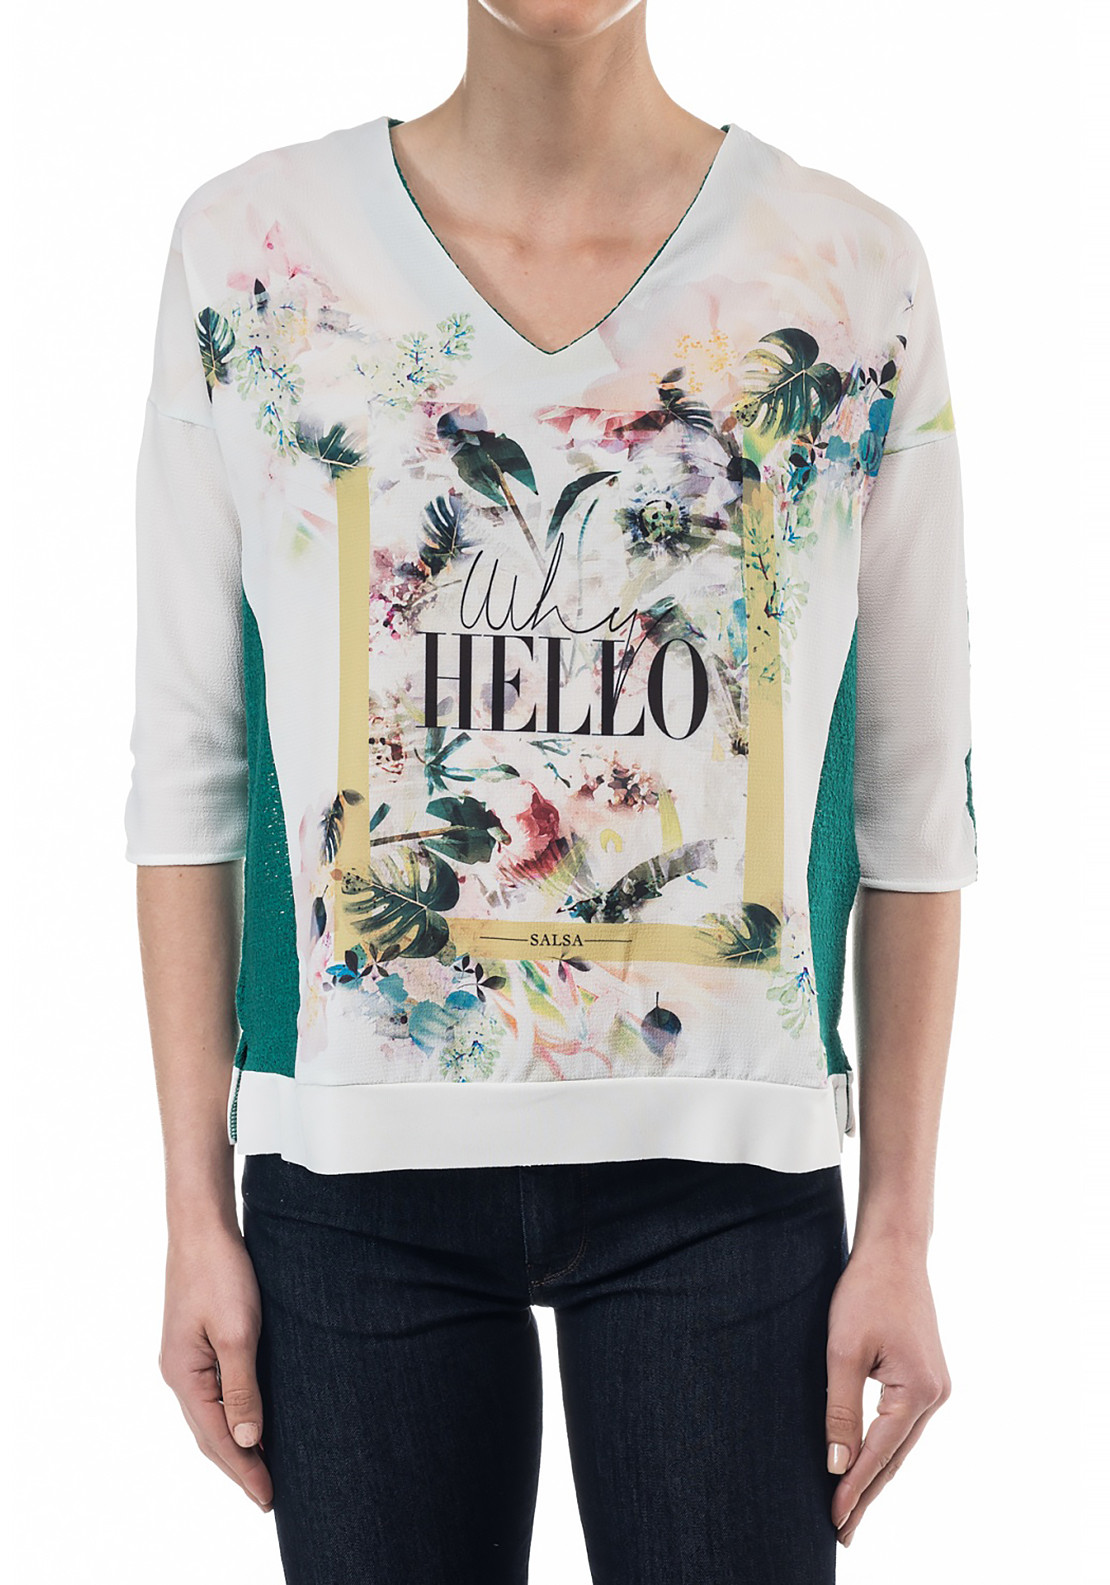 Salsa Austria Cropped Sleeve Hello Print V neck Top, Green and White